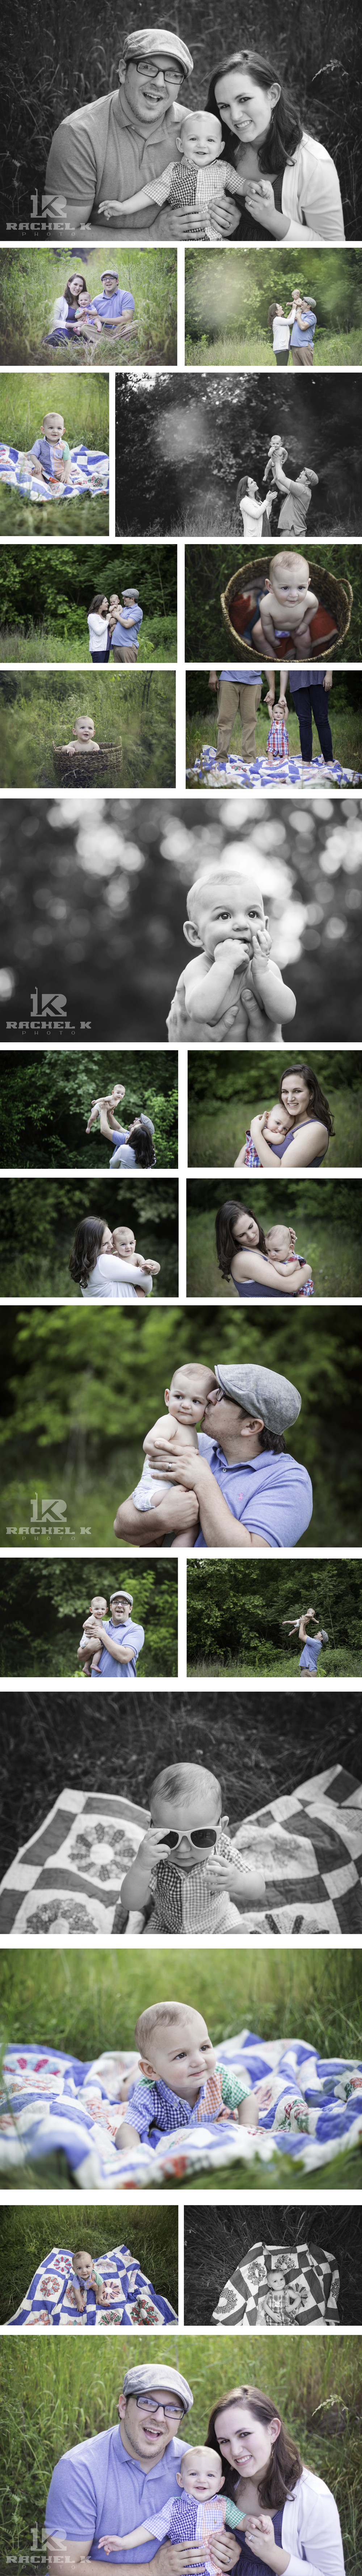 Knoxville photographer Rorex family 6 month old shoot